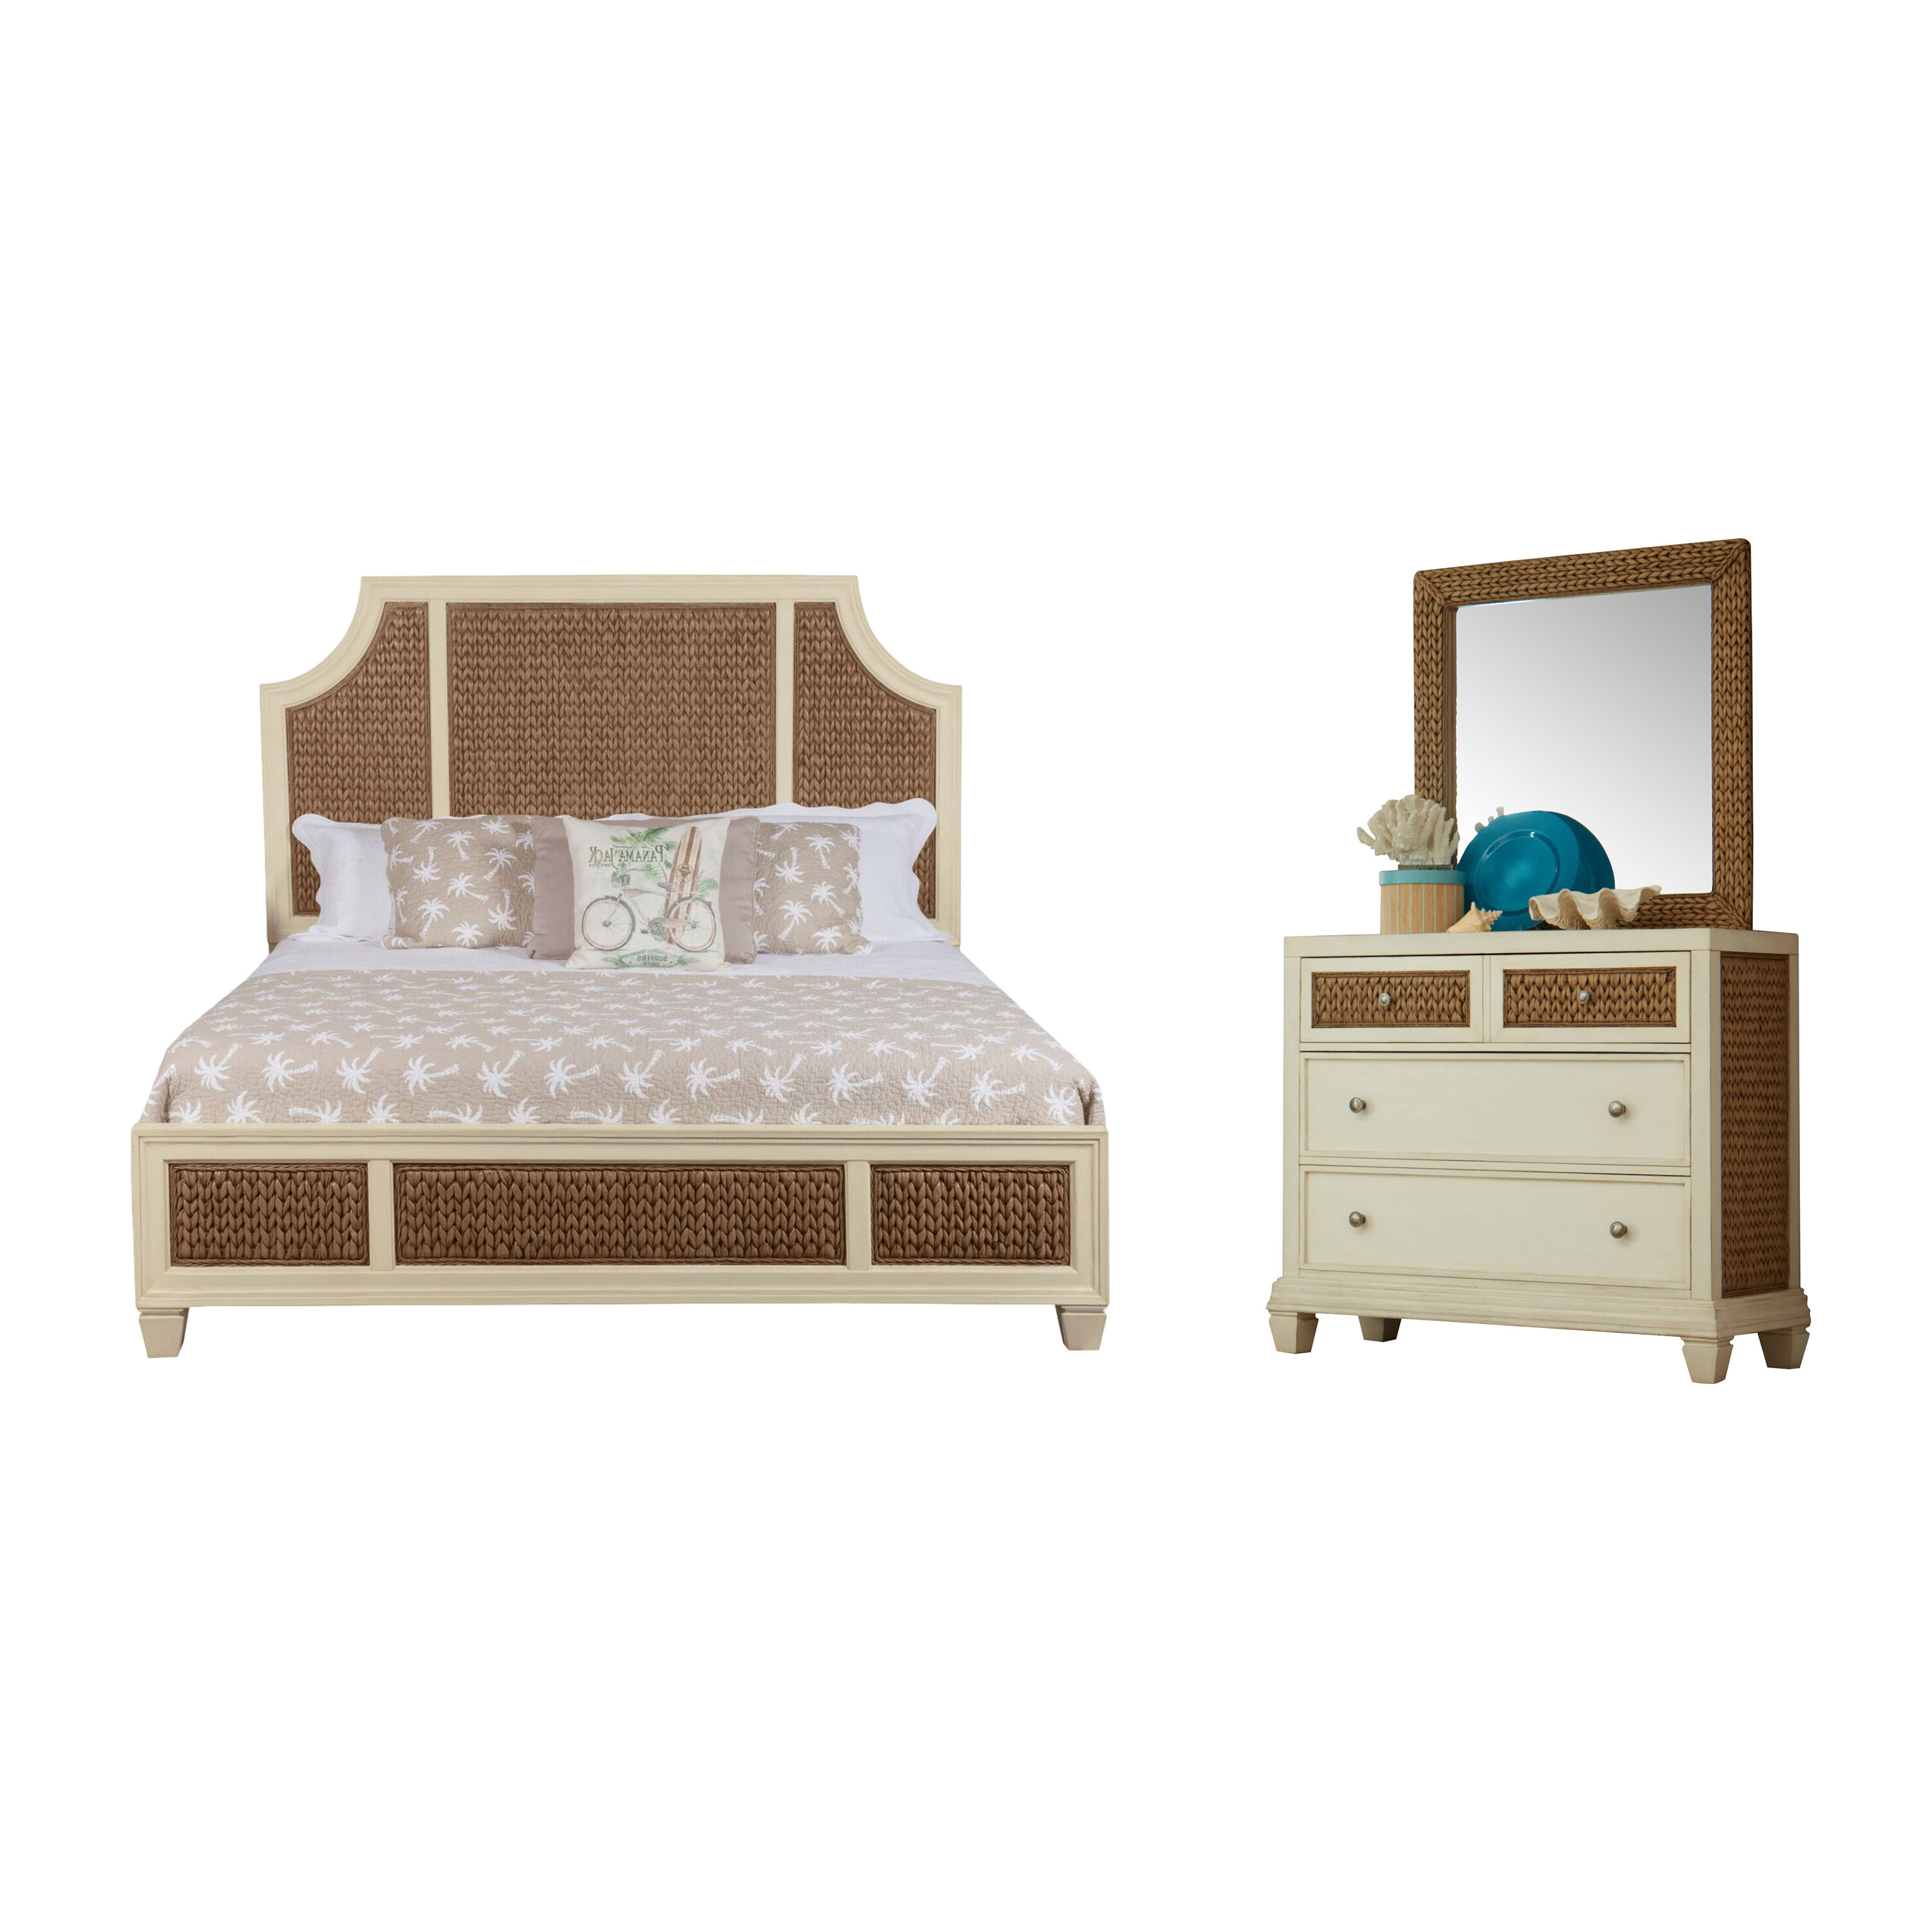 Seagrass Bedroom Furniture Sets BEST HOUSE DESIGN Painting A. New ...